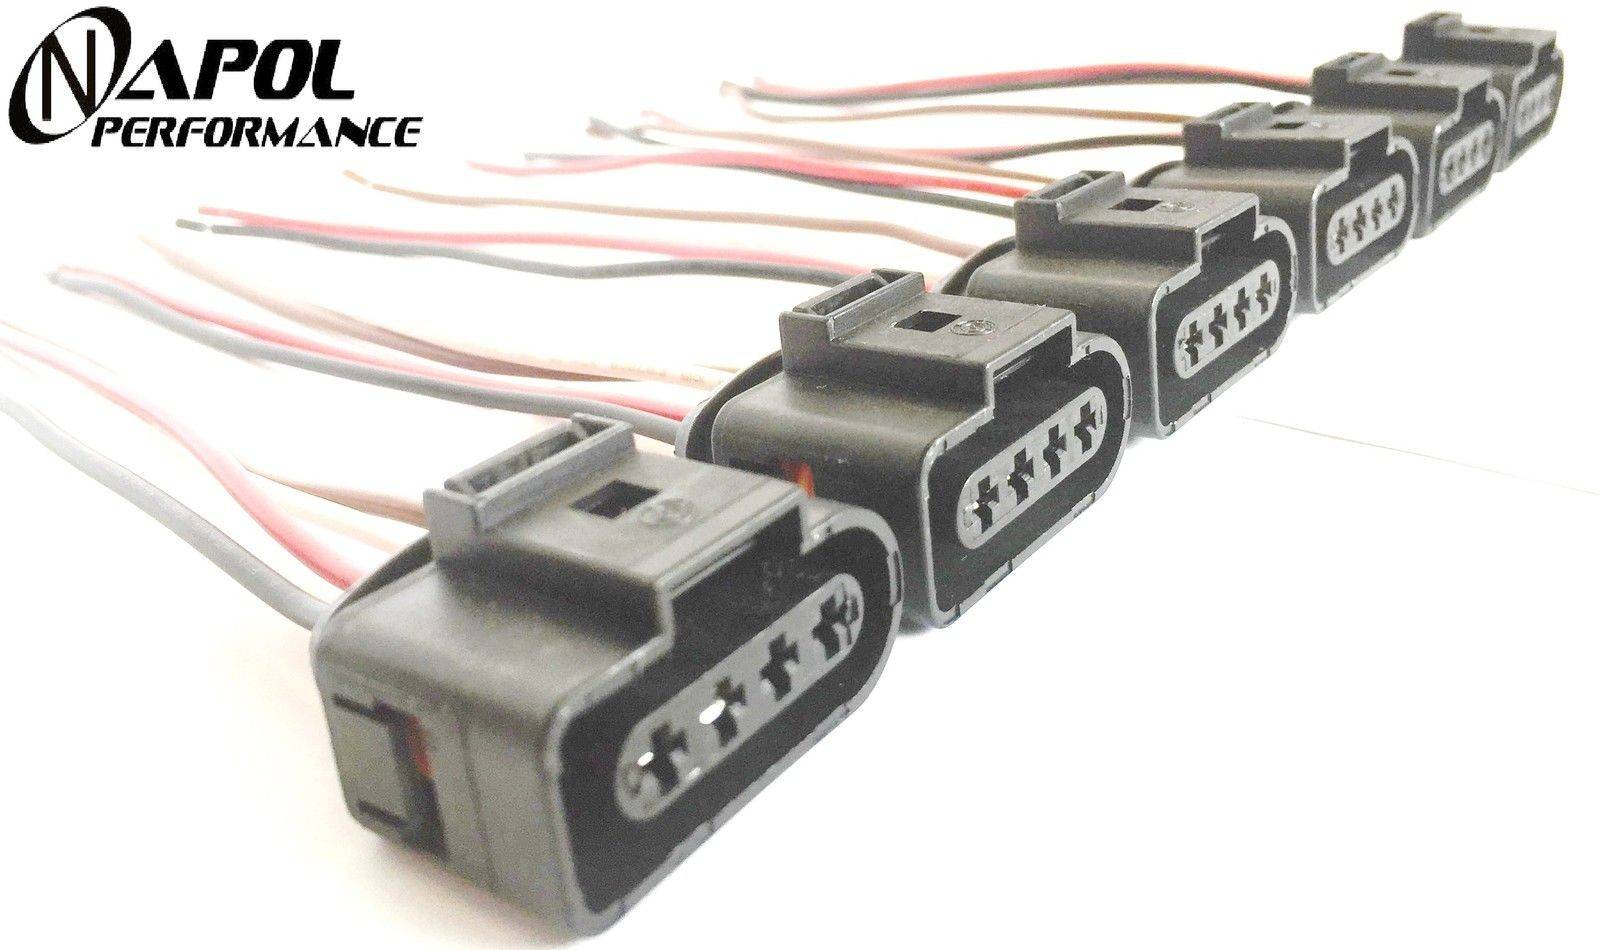 Superb Audi Vw Ignition Coil Connector Repair Kit Harness Plug Wiring A4 Wiring Cloud Eachirenstrafr09Org